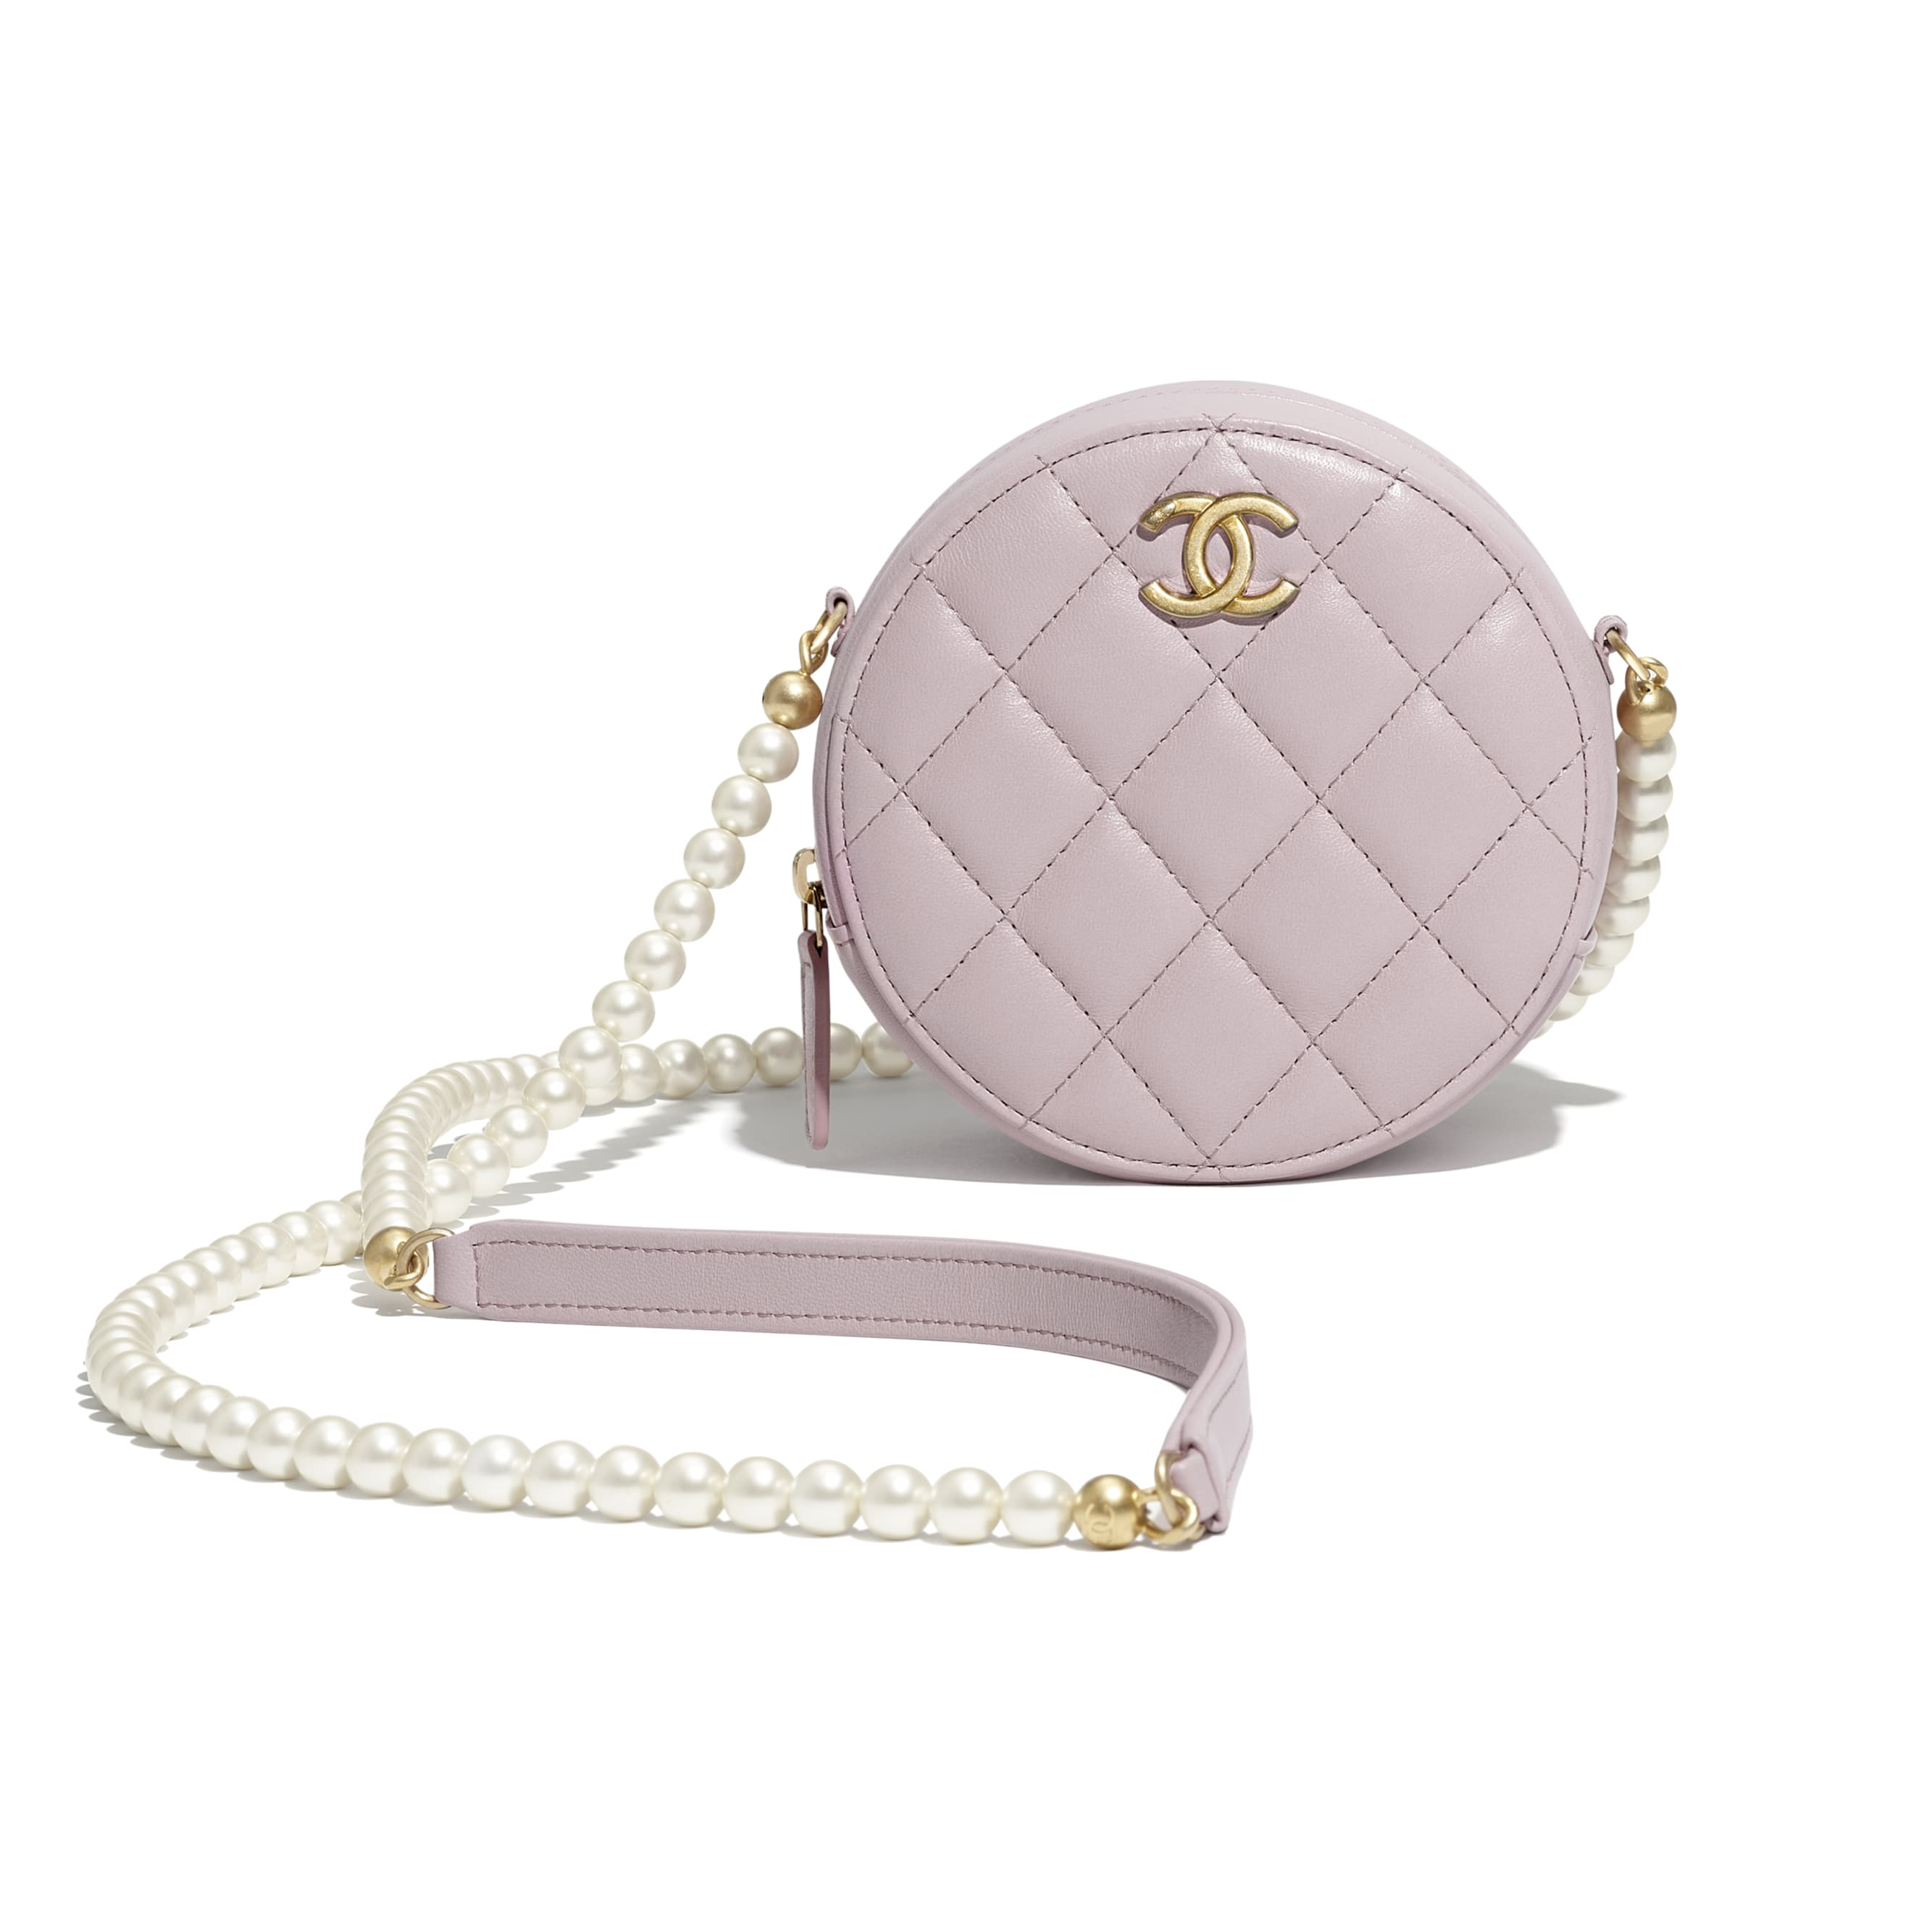 Clutch With Chain - Light Pink - Calfskin, Imitation Pearls & Gold-Tone Metal - CHANEL - Extra view - see standard sized version